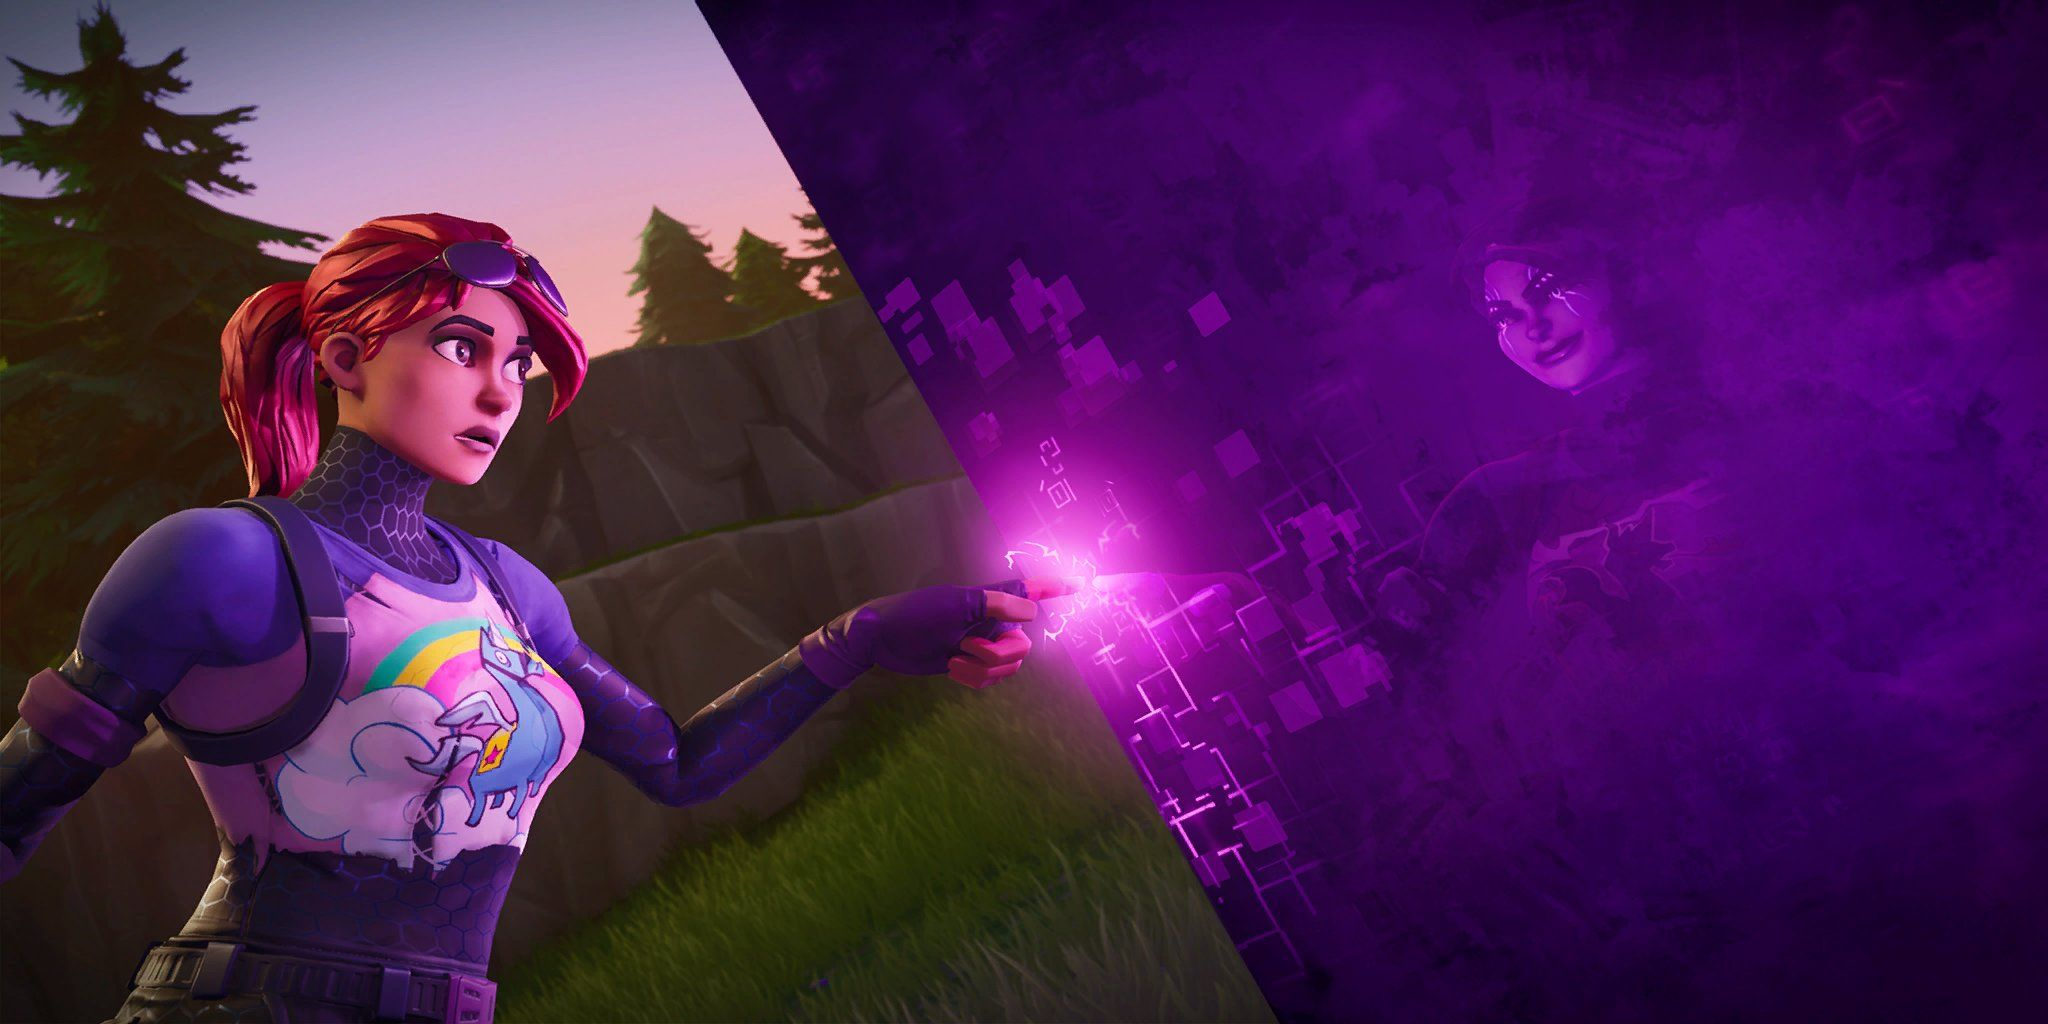 Work-in-Progress Dark Bomber Skin discovered in #Fortnite v5